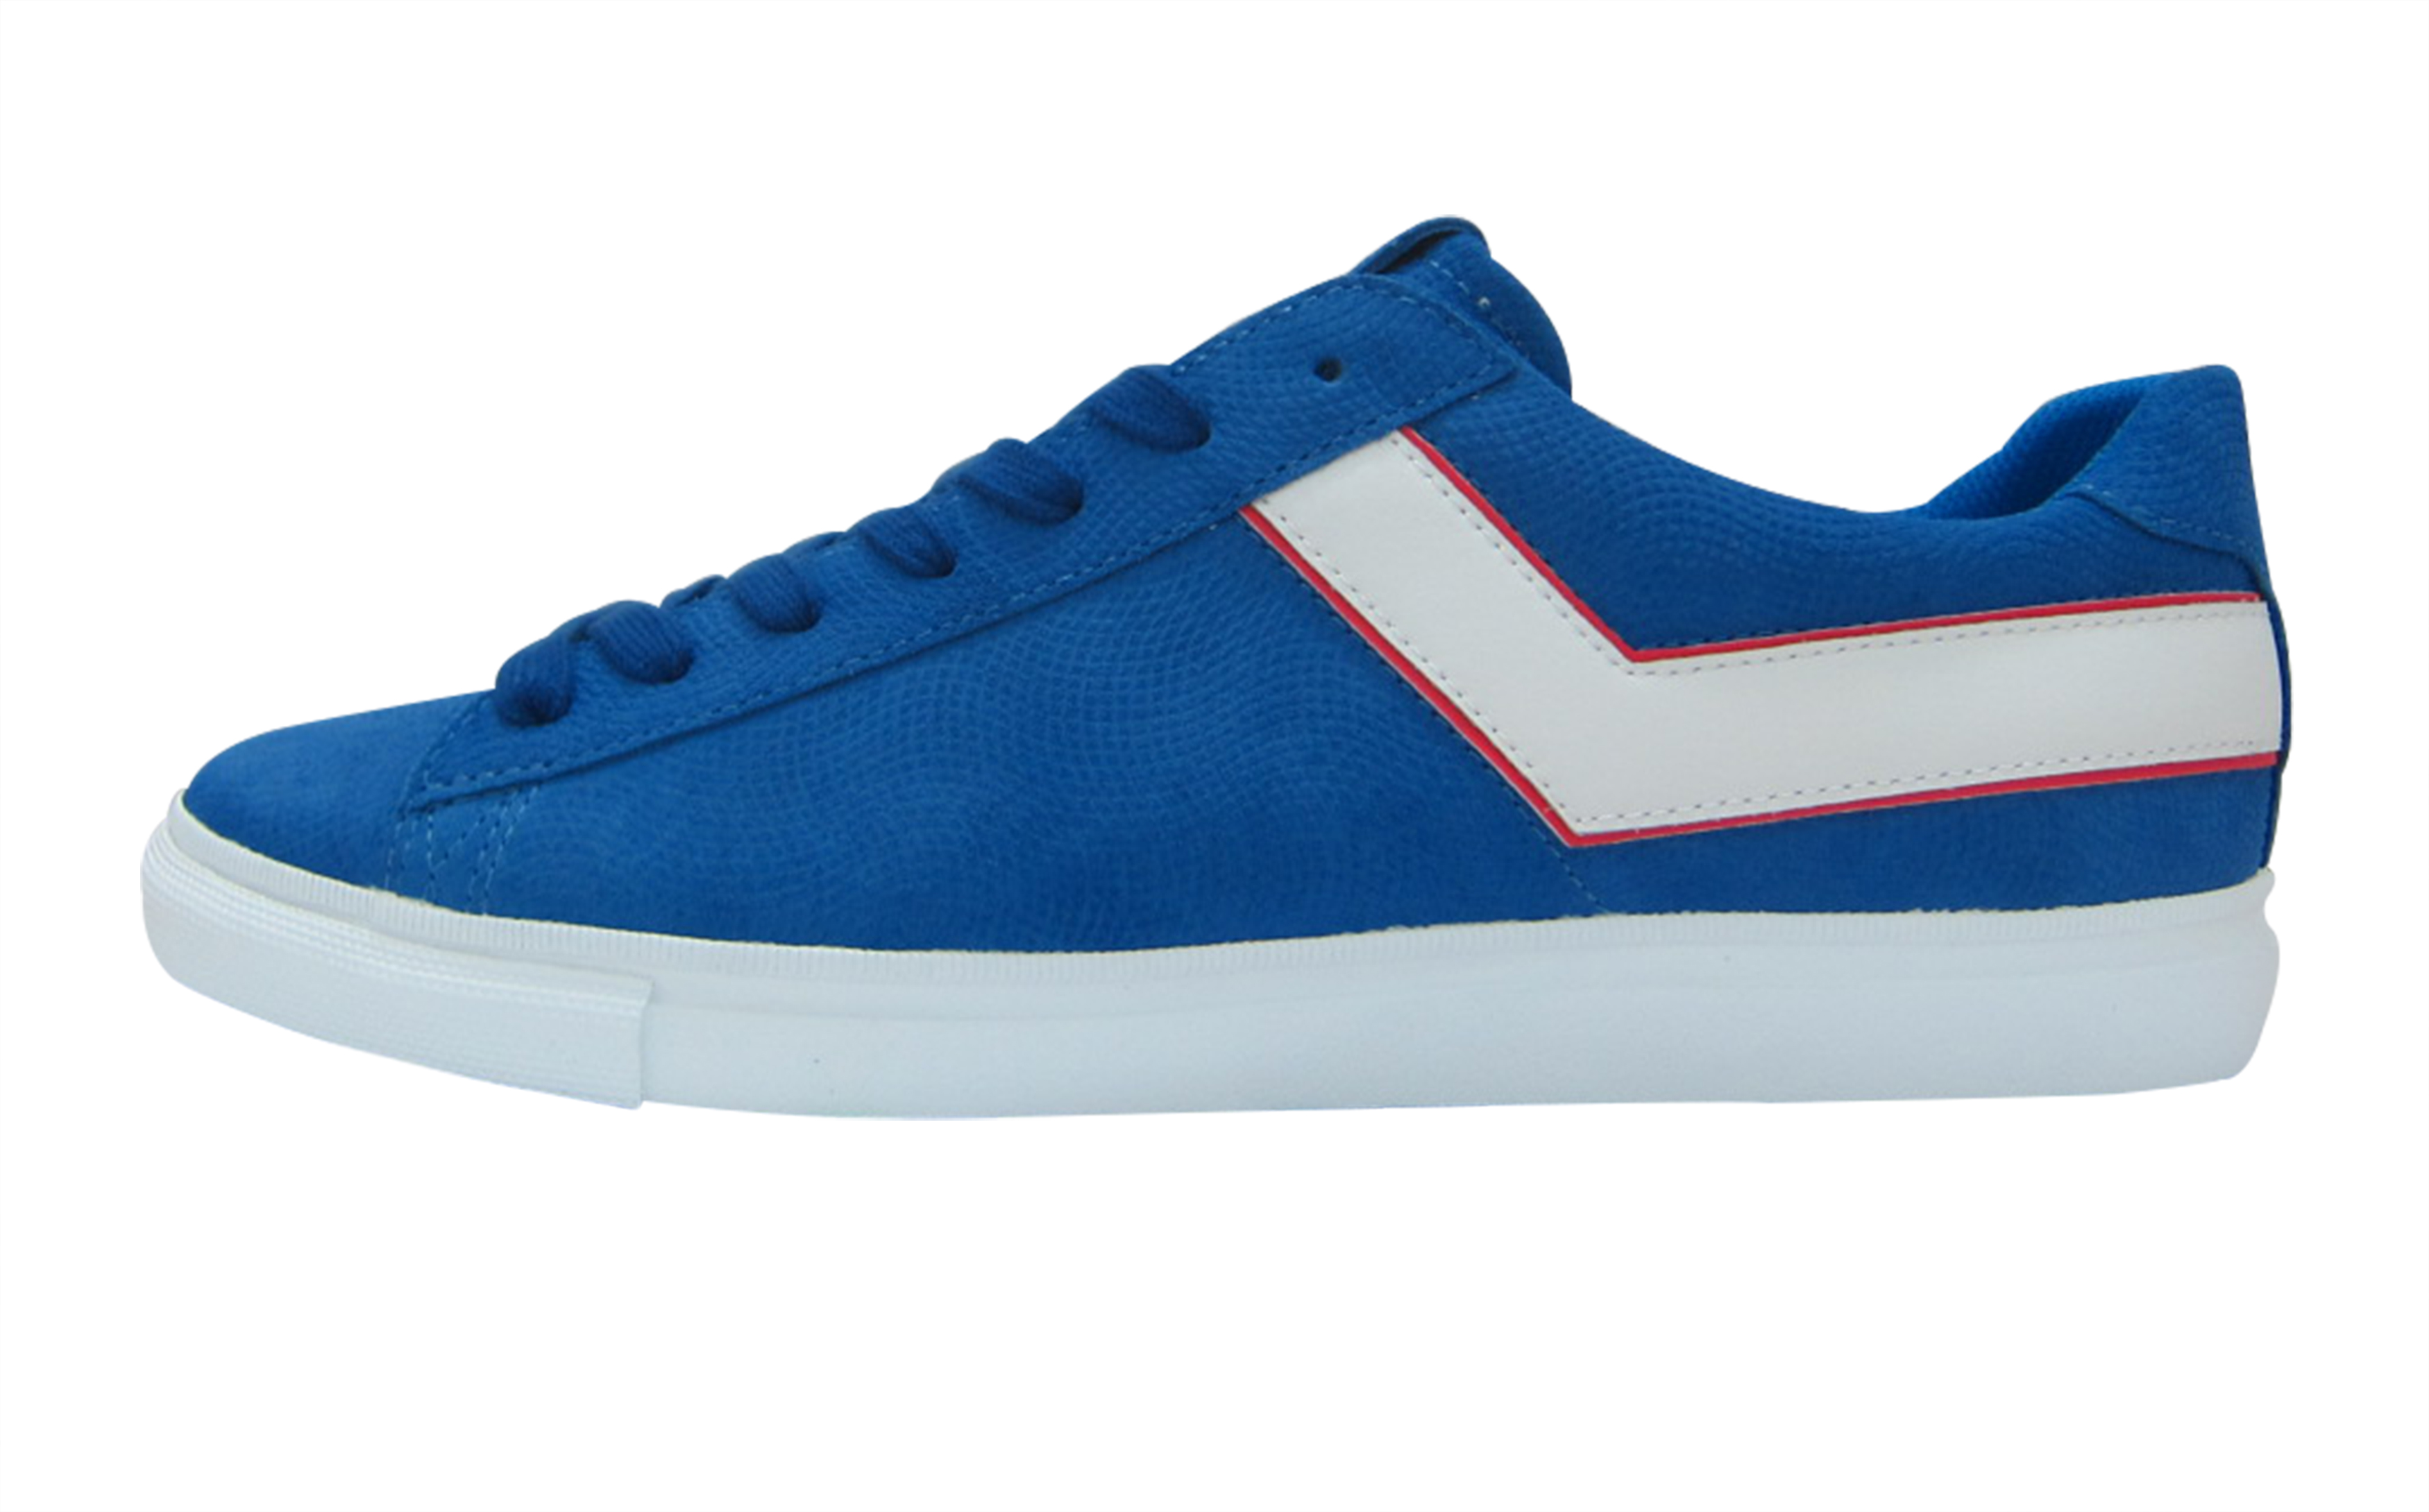 PONY SS17_TOPSTAR OX EMBOSS SUEDE_blue white red